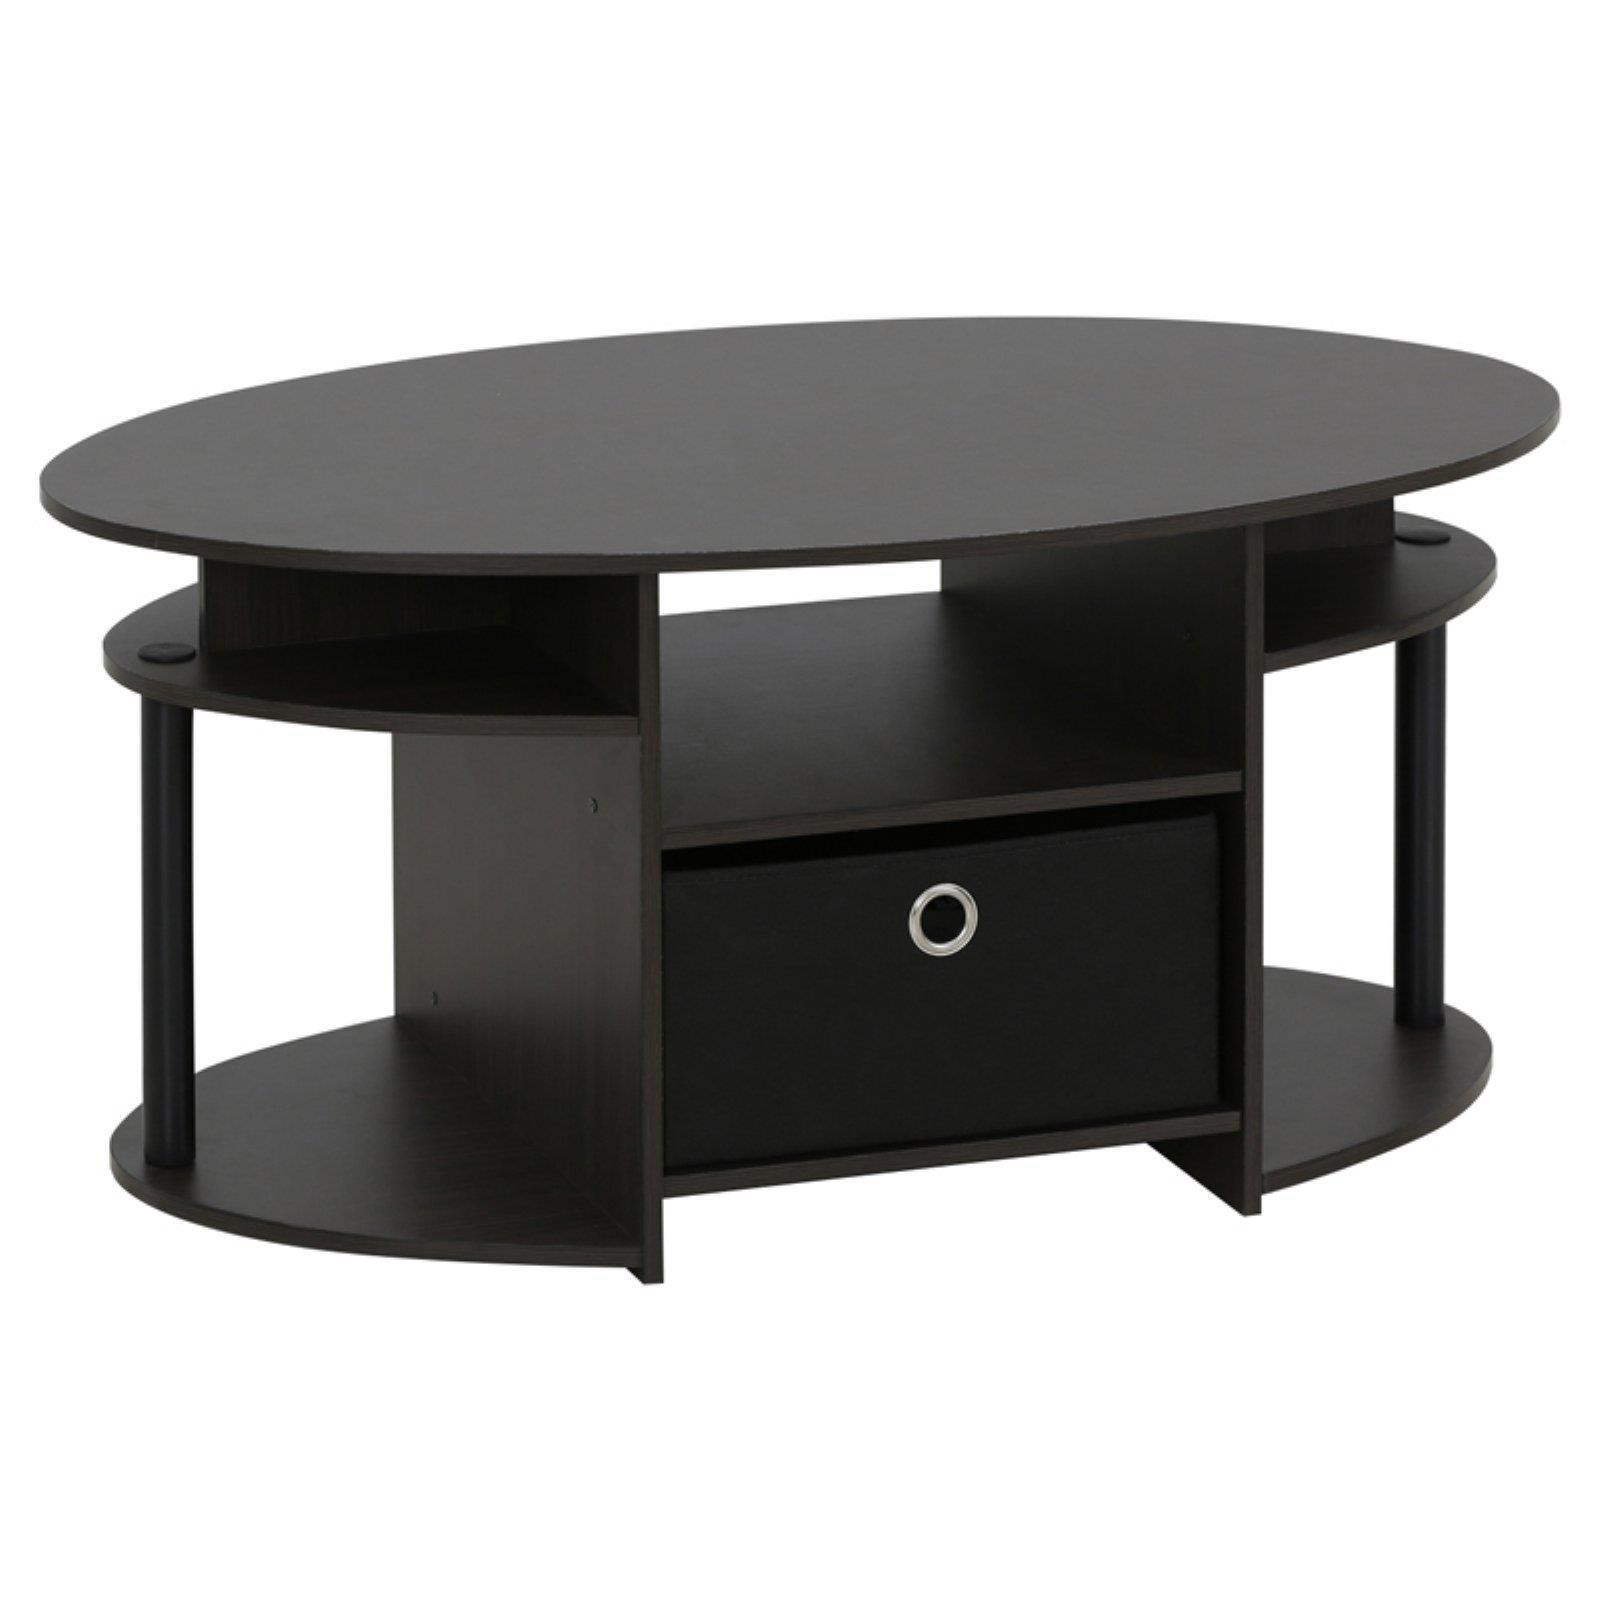 Furinno Jaya Oval Coffee Table: Oval Coffee Table With Bin Modern Wooden Tables Living